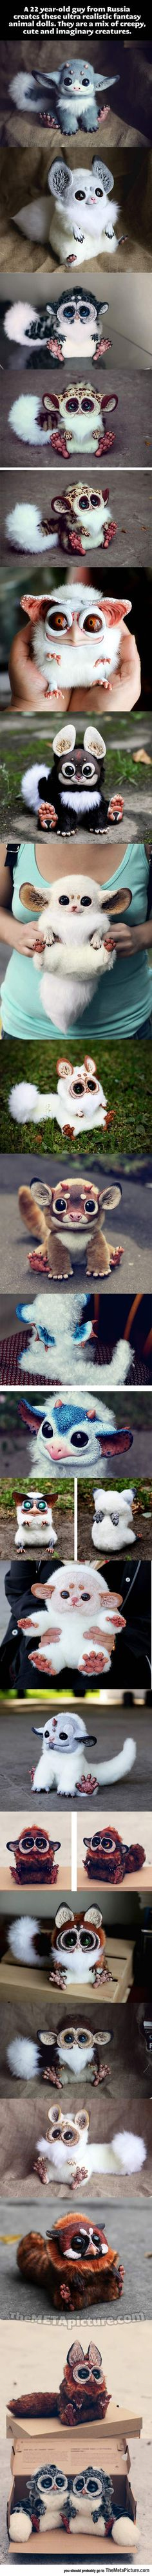 Funny pictures about Ultra-realistic fantasy animal dolls. Oh, and cool pics about Ultra-realistic fantasy animal dolls. Also, Ultra-realistic fantasy animal dolls. Fantasy Animal, Fantasy Creatures, Mythical Creatures, Fantasy Art, Fantasy Dolls, Kawaii, Creation Art, Art Dolls, Dolls Dolls